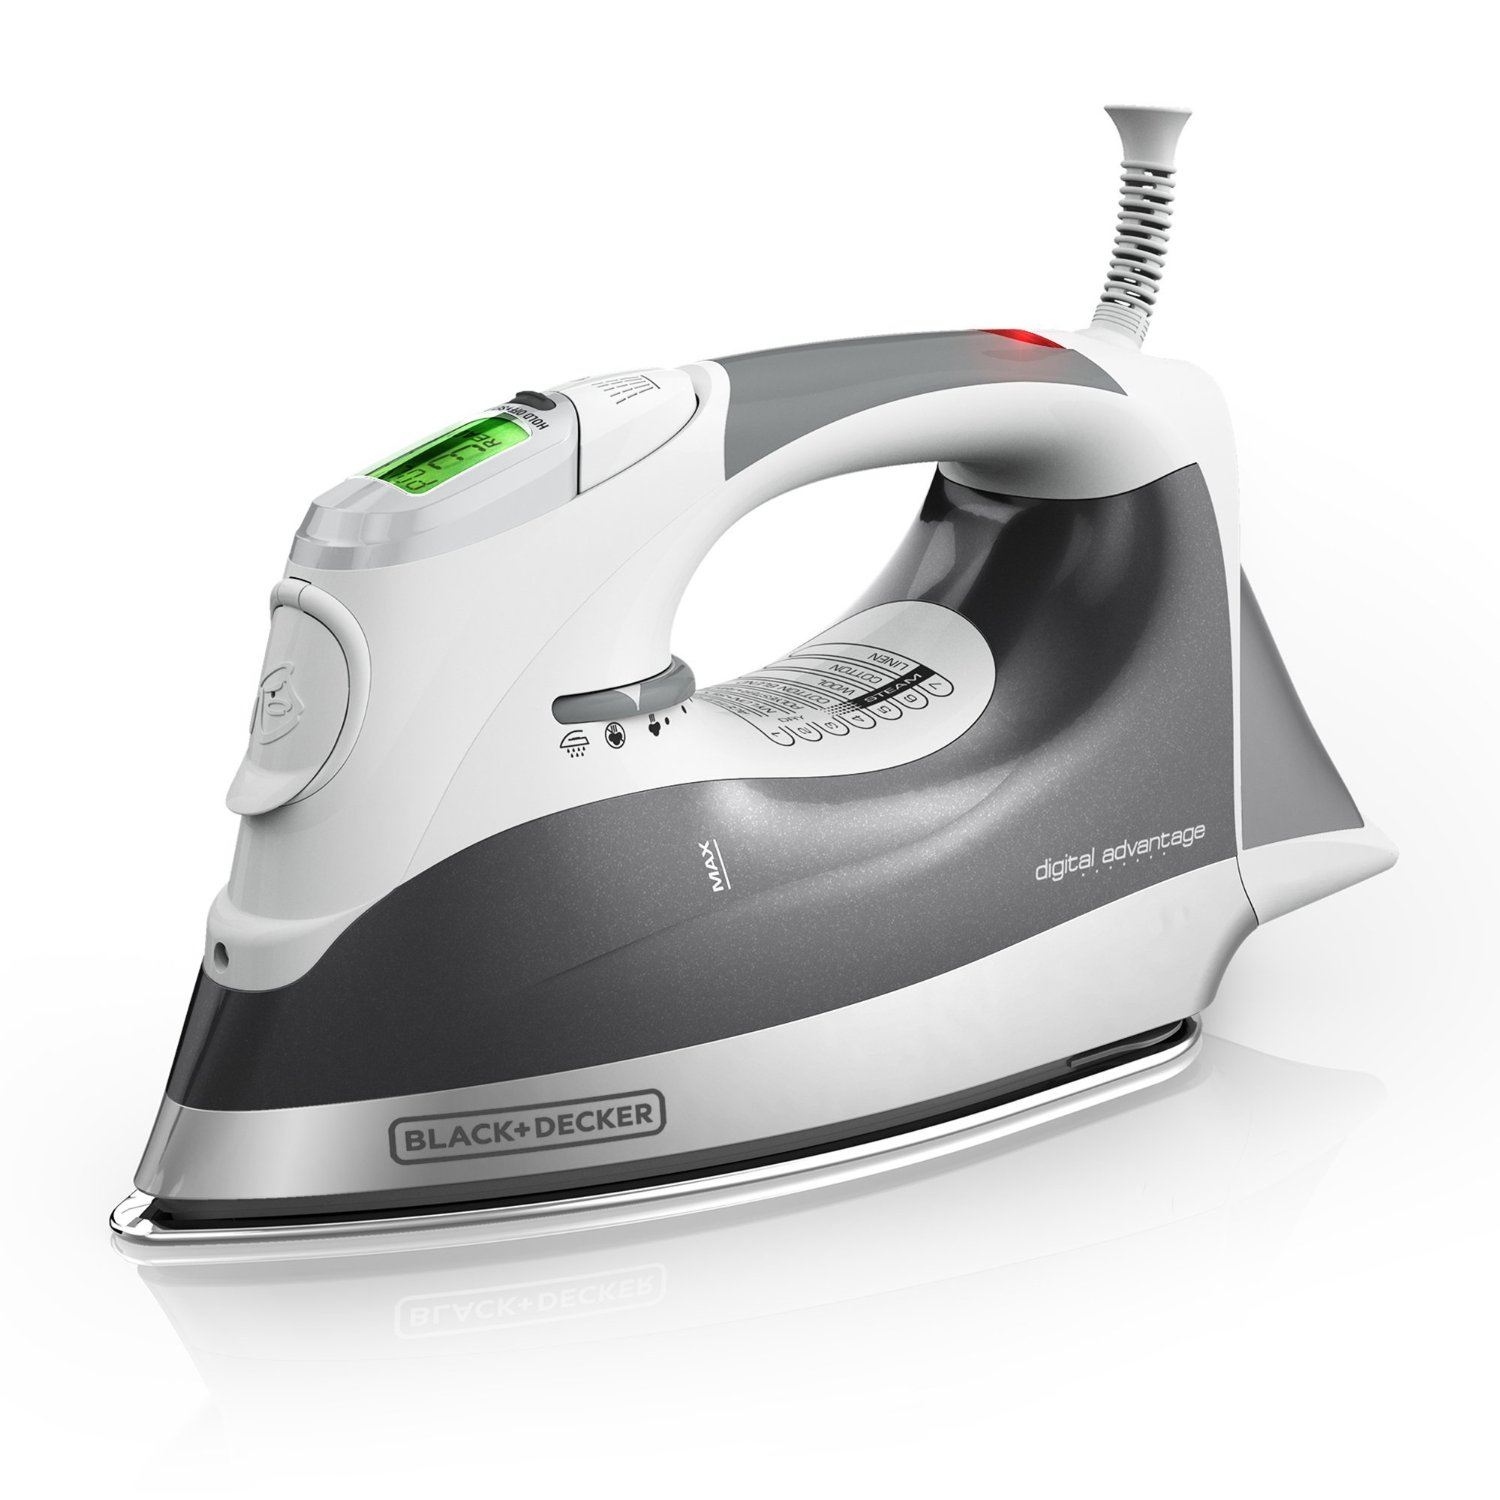 Black and Decker Digital Advantage™ Professional Steam Iron with Auto-Off